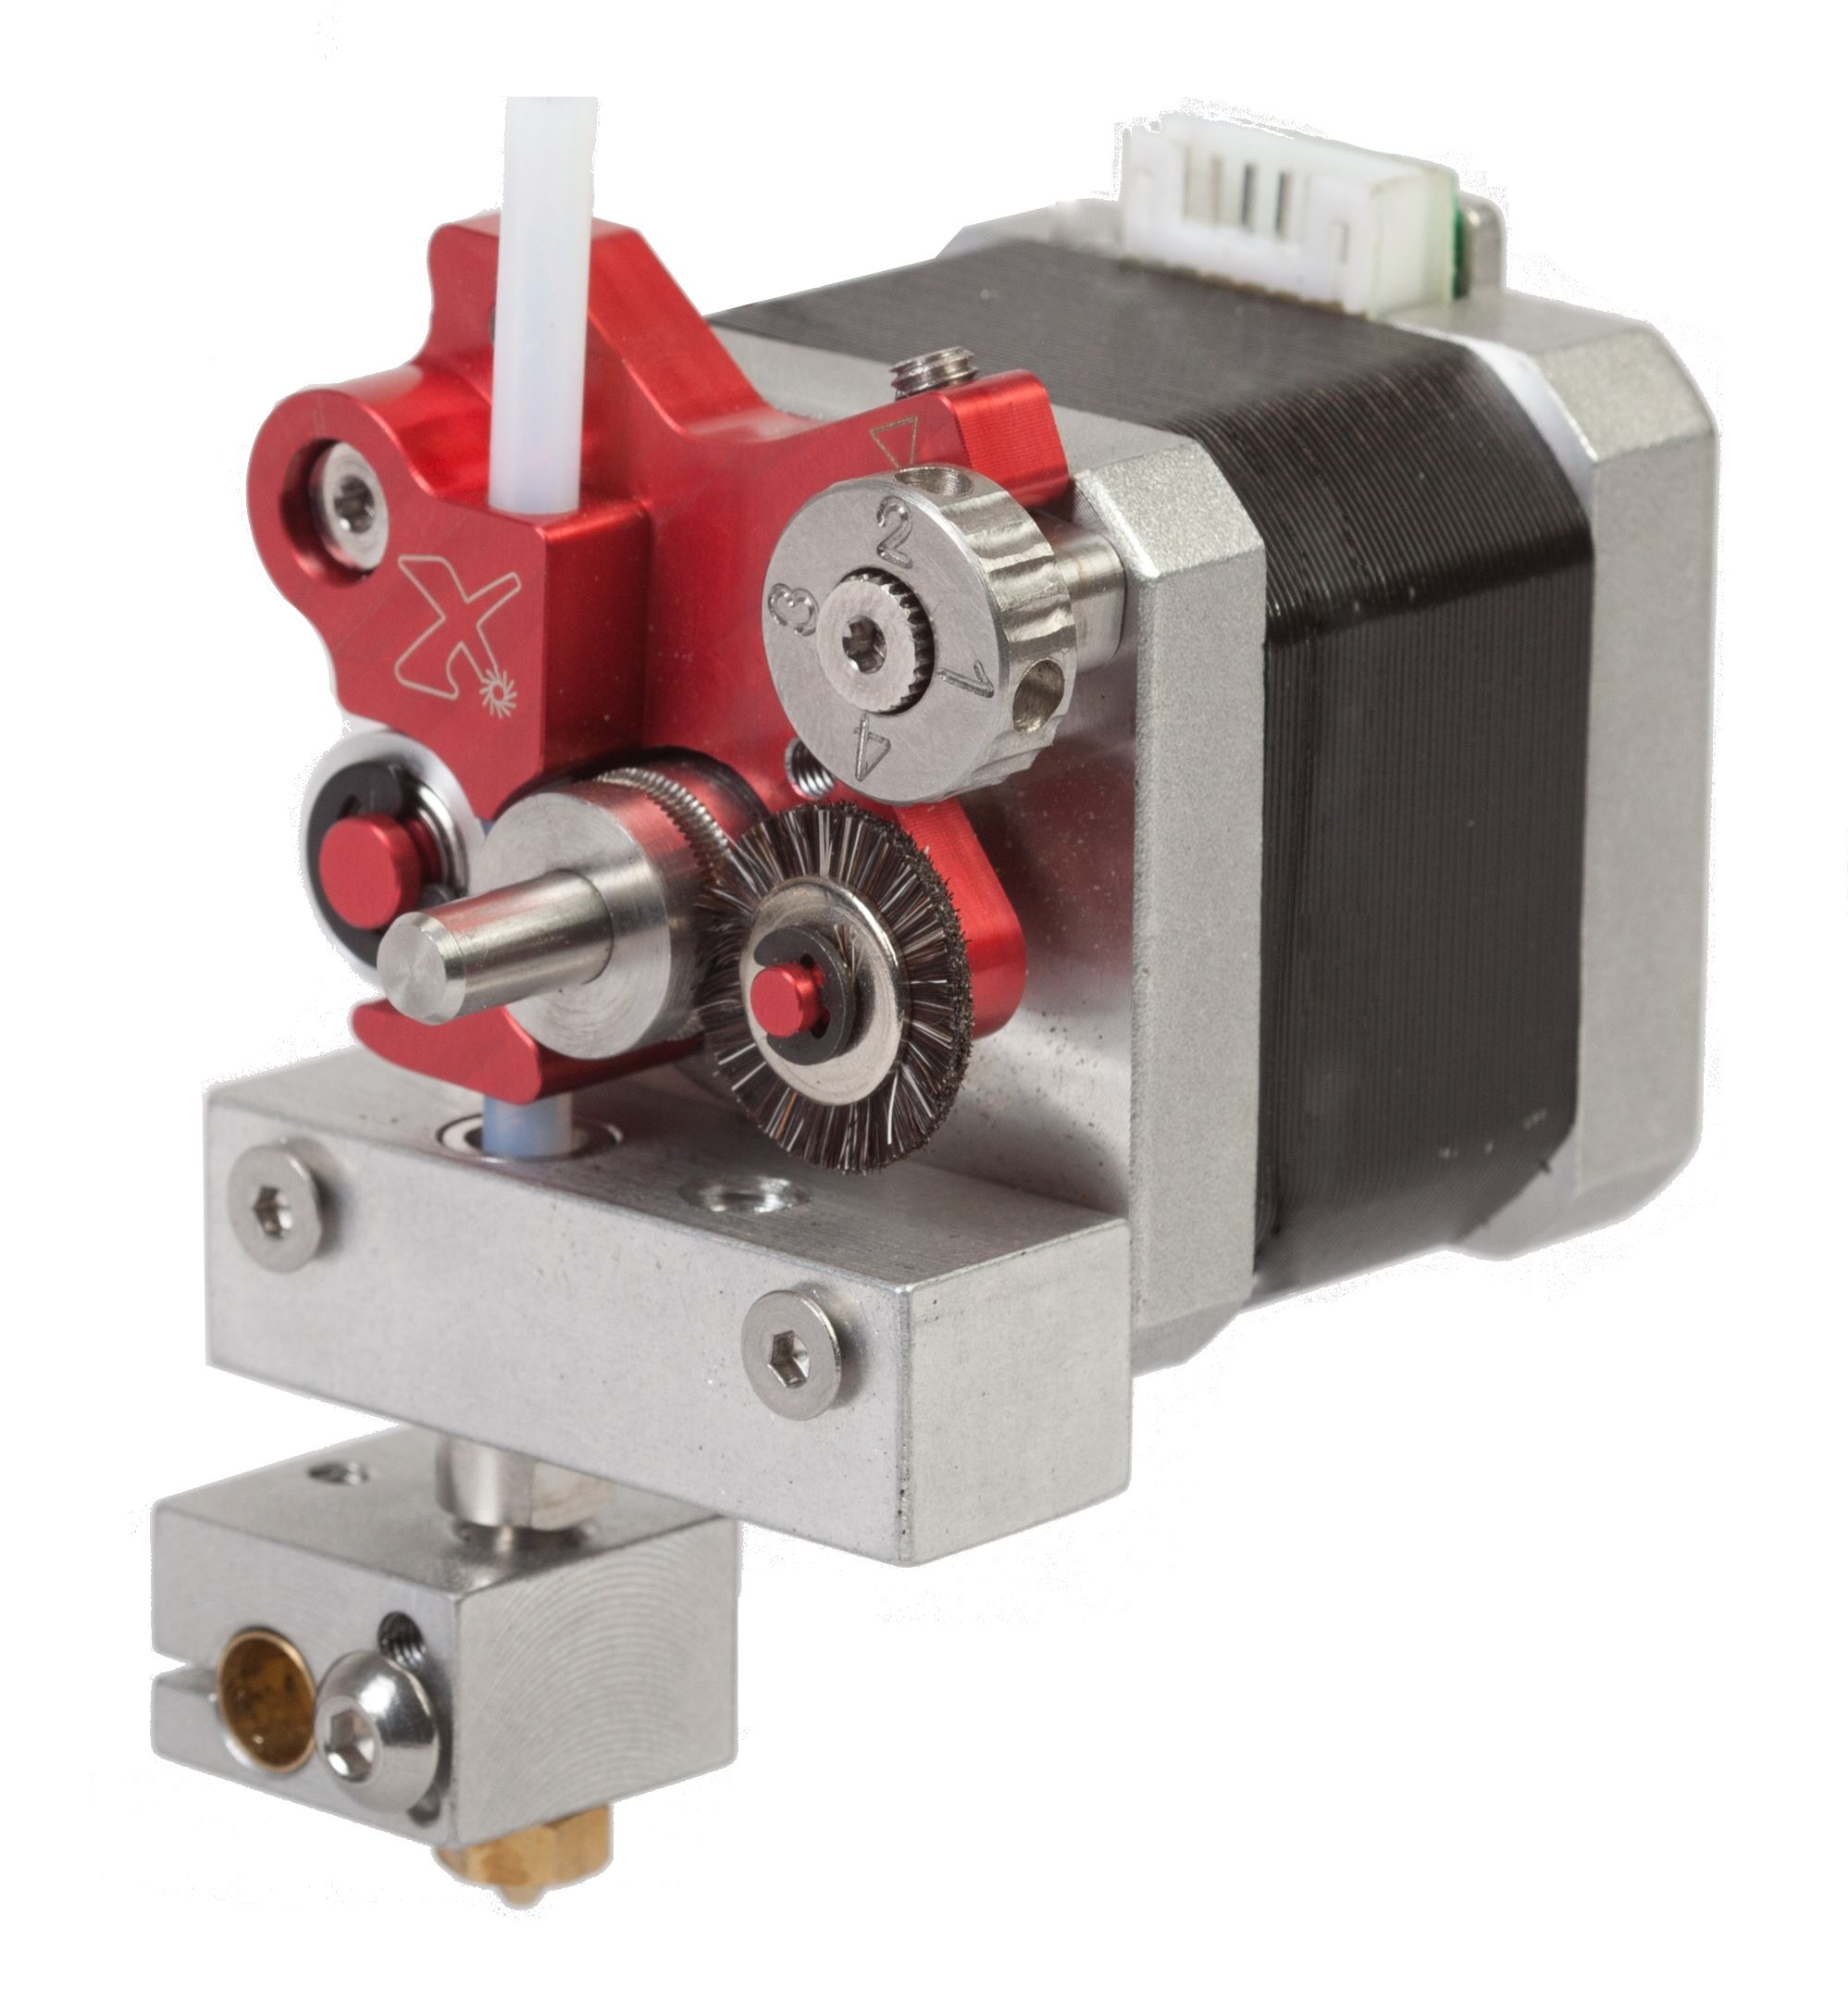 Flexion HT High-temp Flexion Extruder Kit